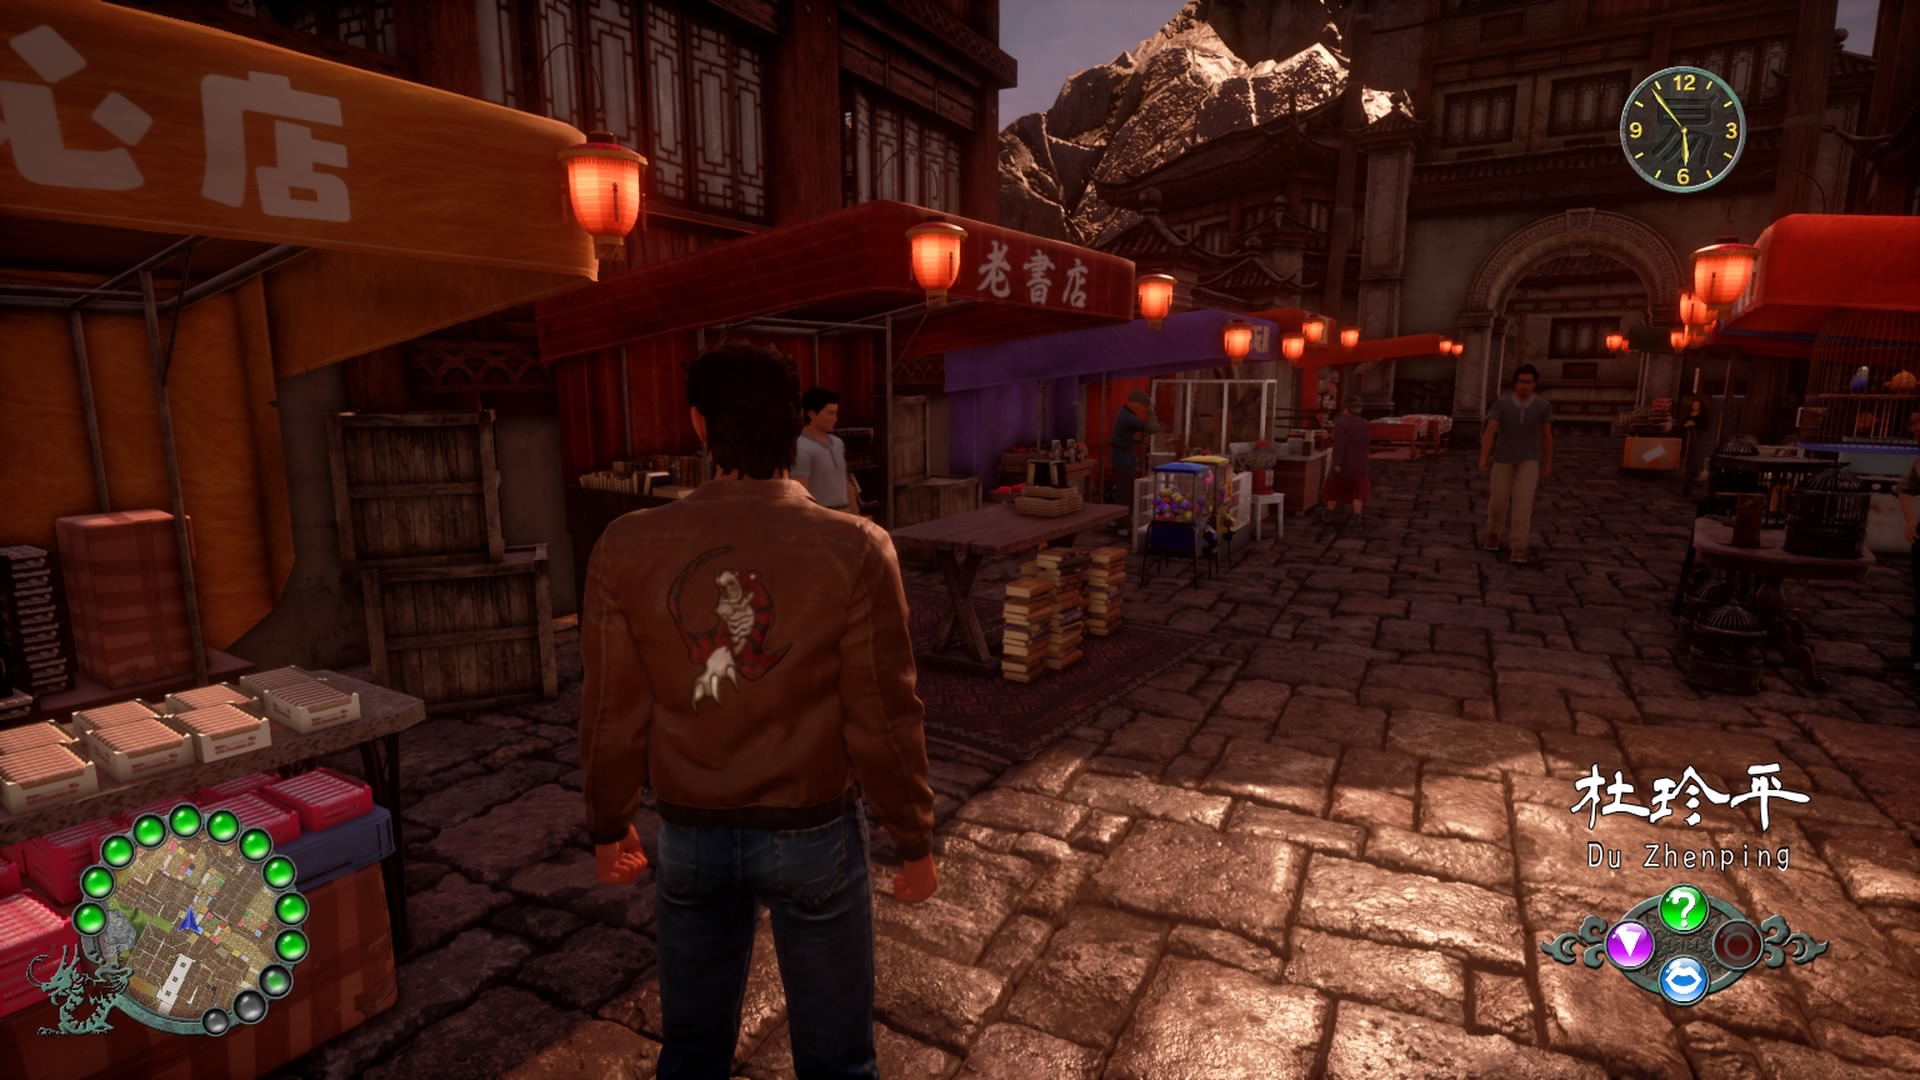 Shenmue 3: Earn Money (Yuan) Faster with This Exploit Dusty Pages Books